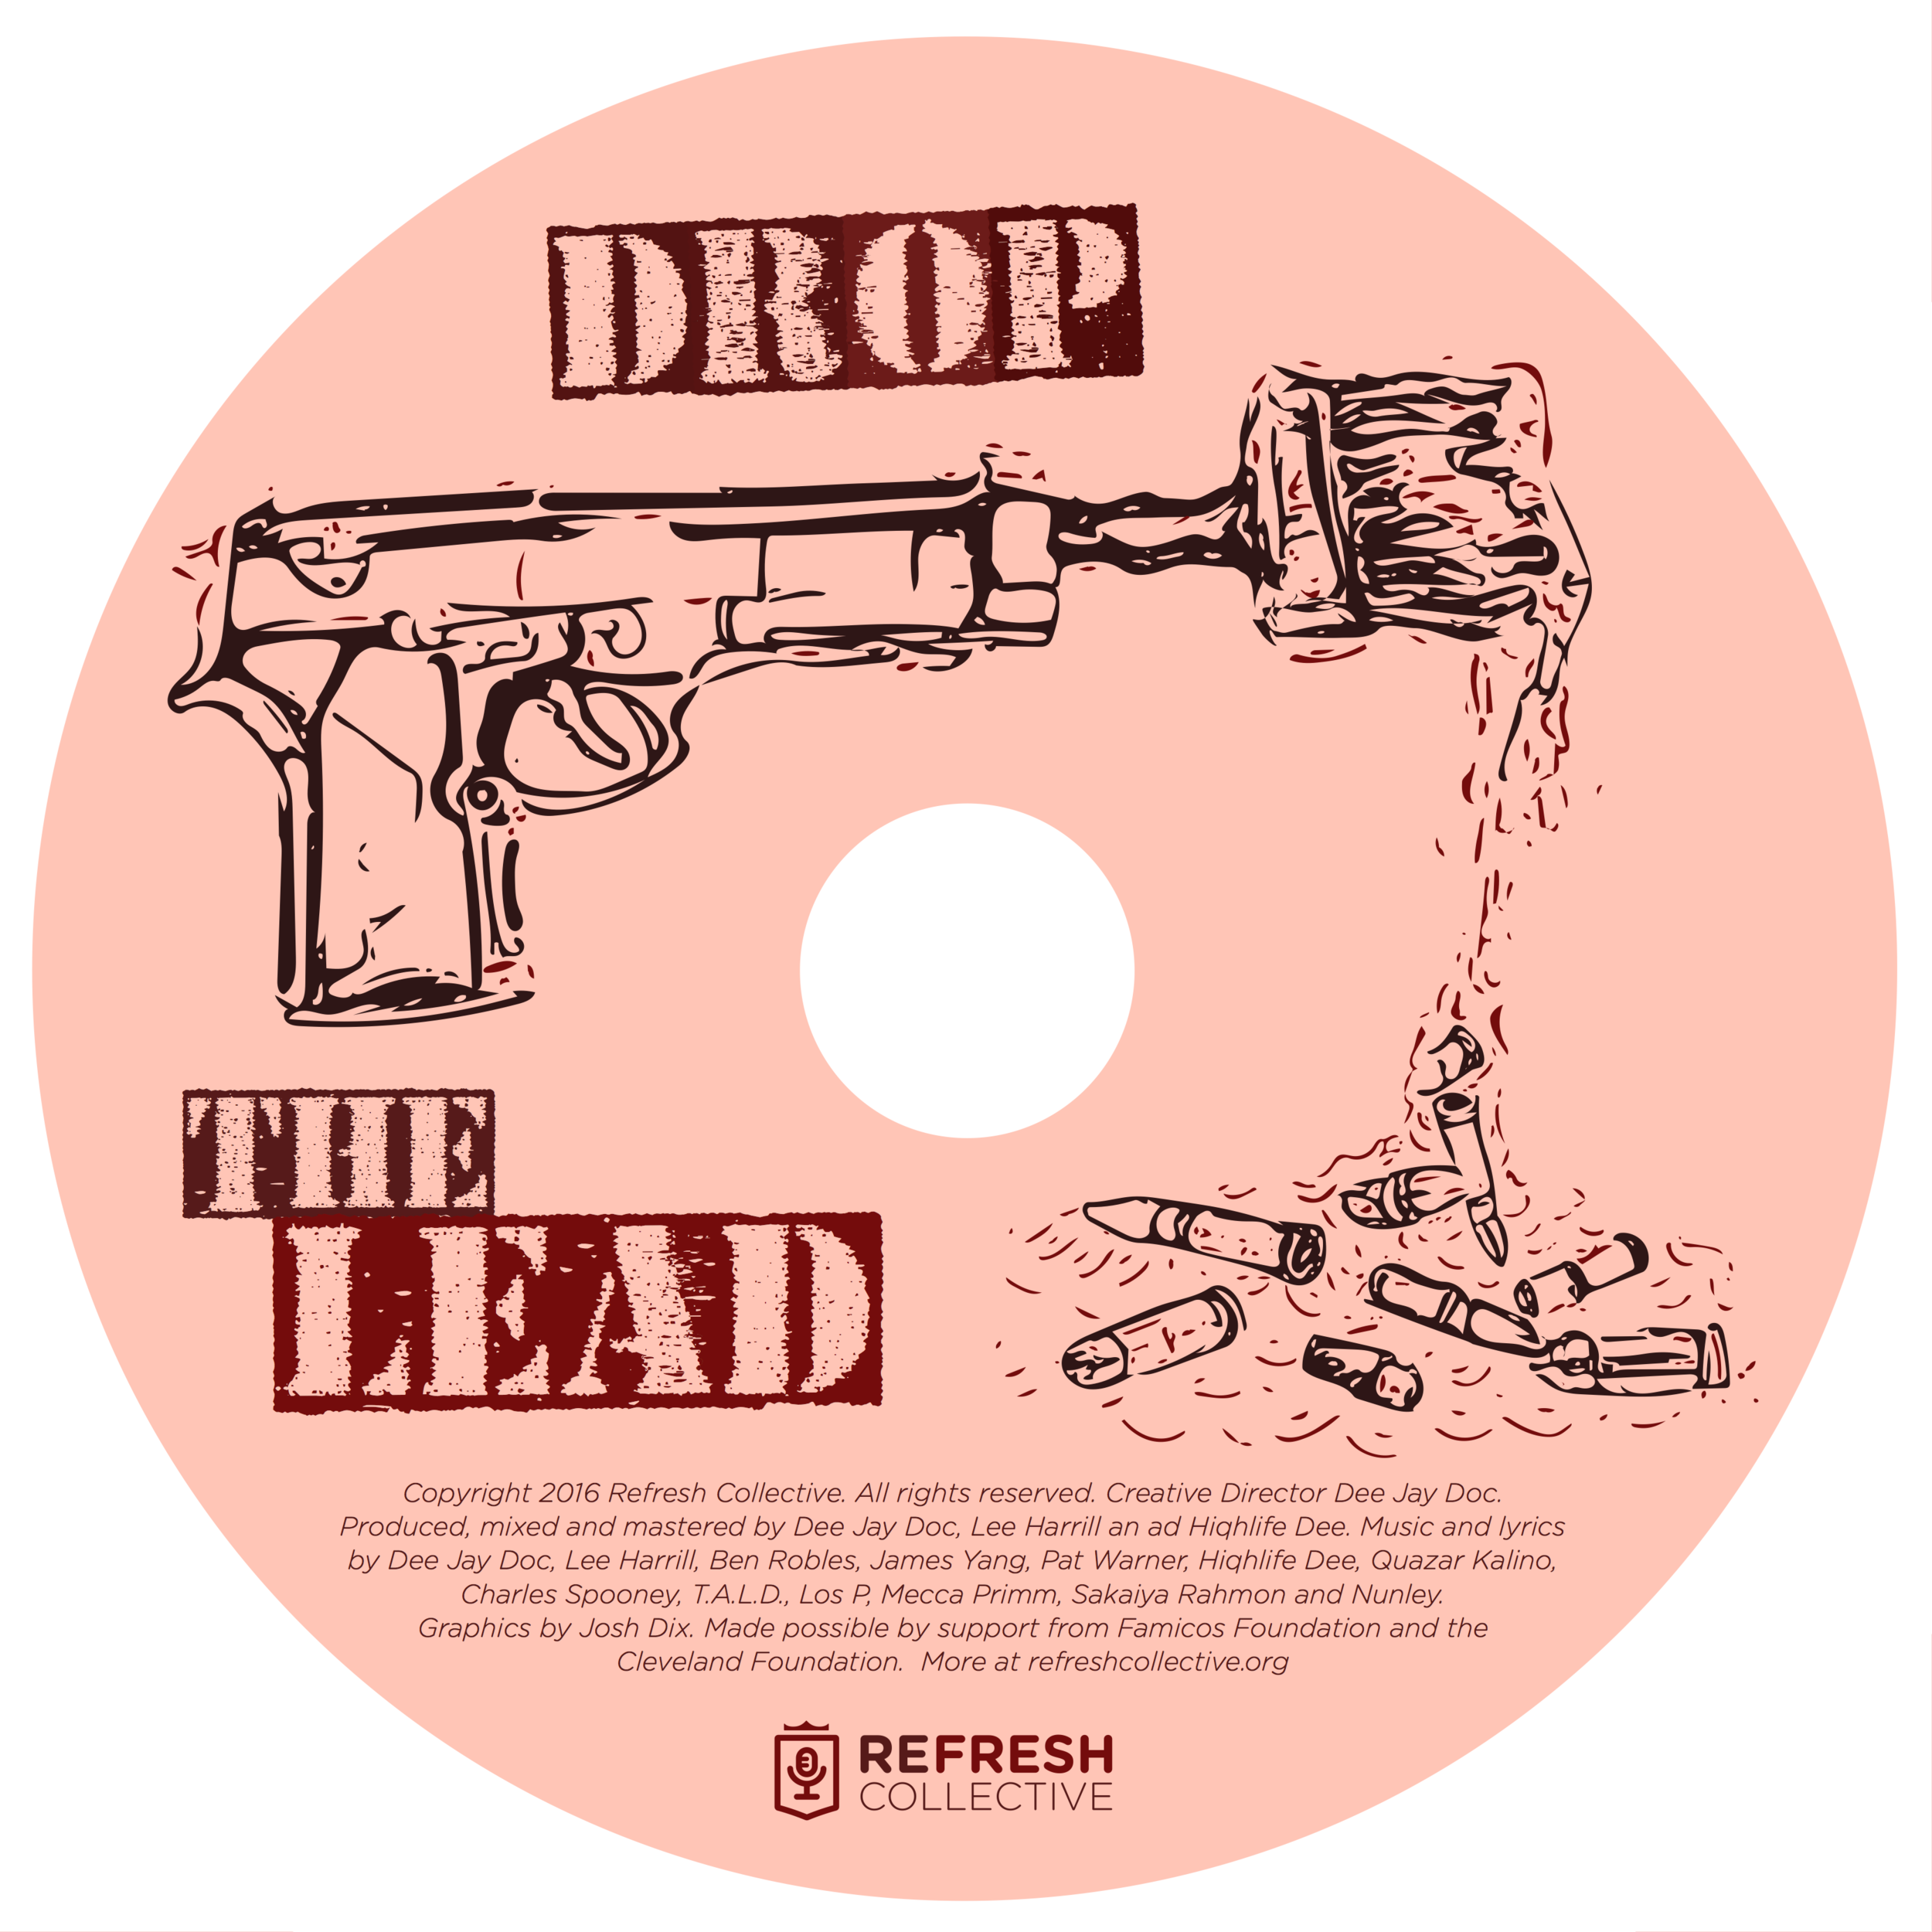 Drop the Lead Cd image4.png